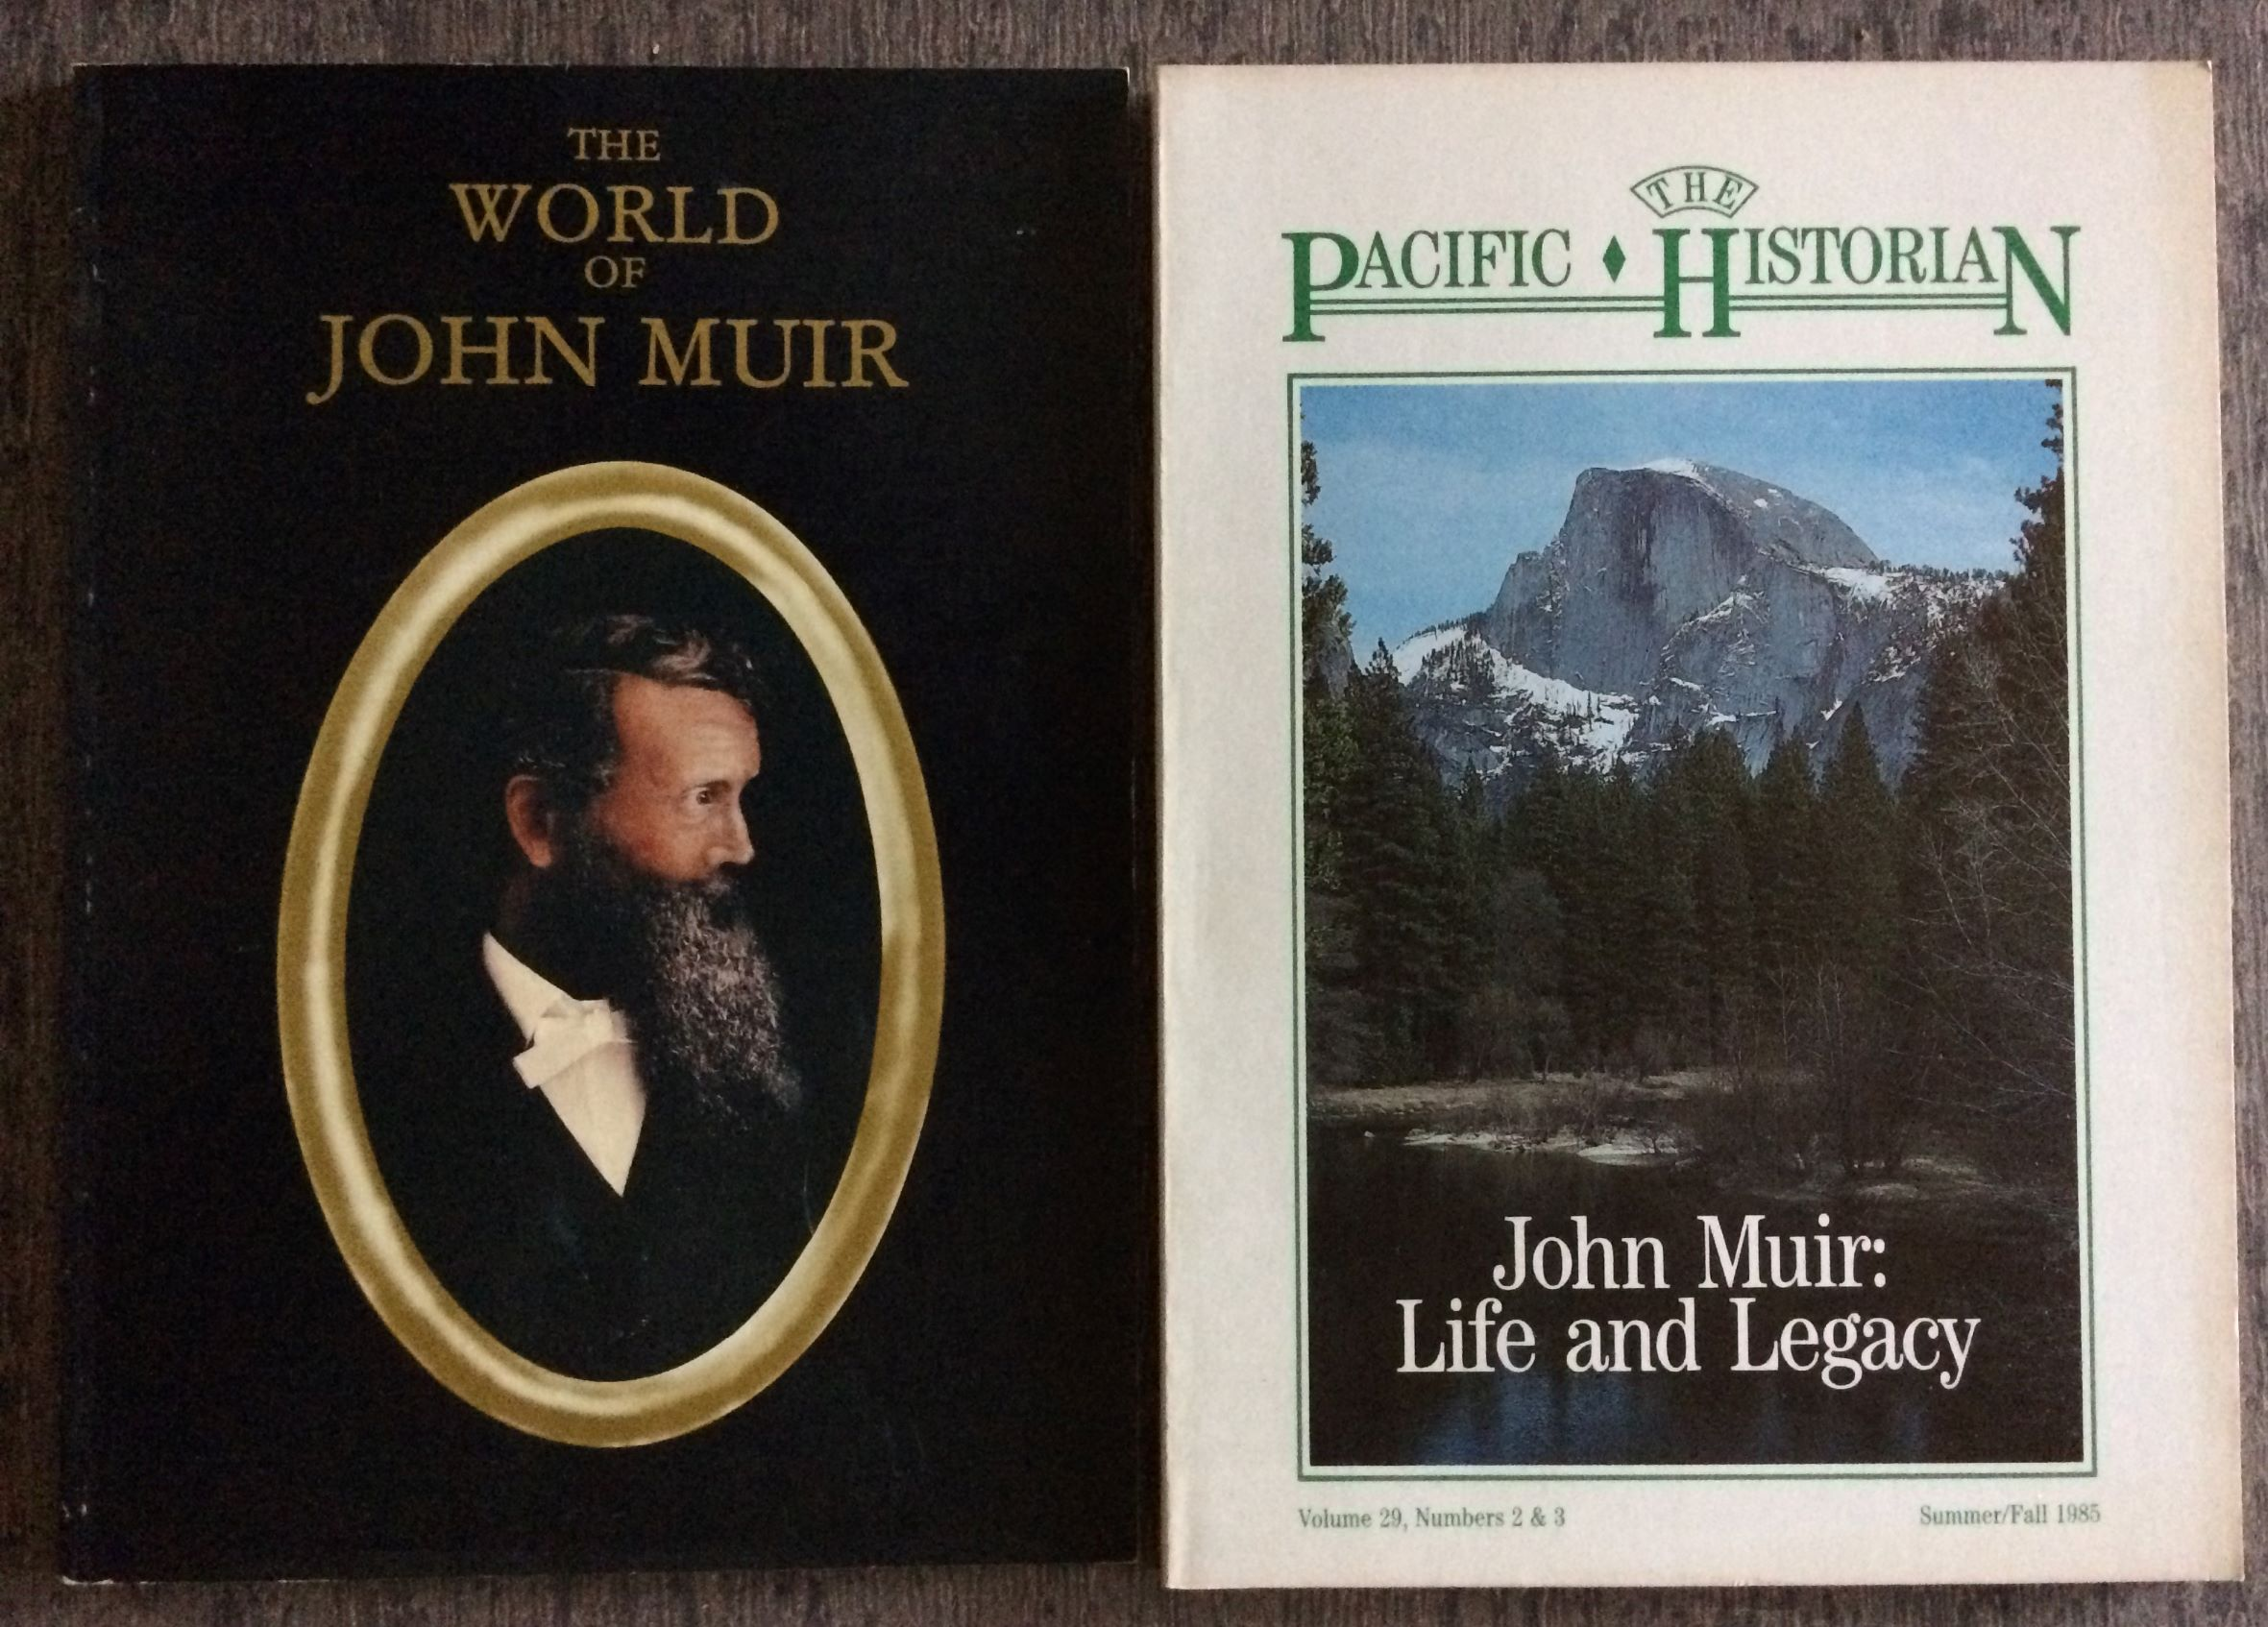 Image for [Two Items] The Pacific Historian. A Quarterly of Western History and Ideas, John Muir, Life and Legacy; together with The World of John Muir.  Volume 29, Numbers 2&3; Summer/Fall1985